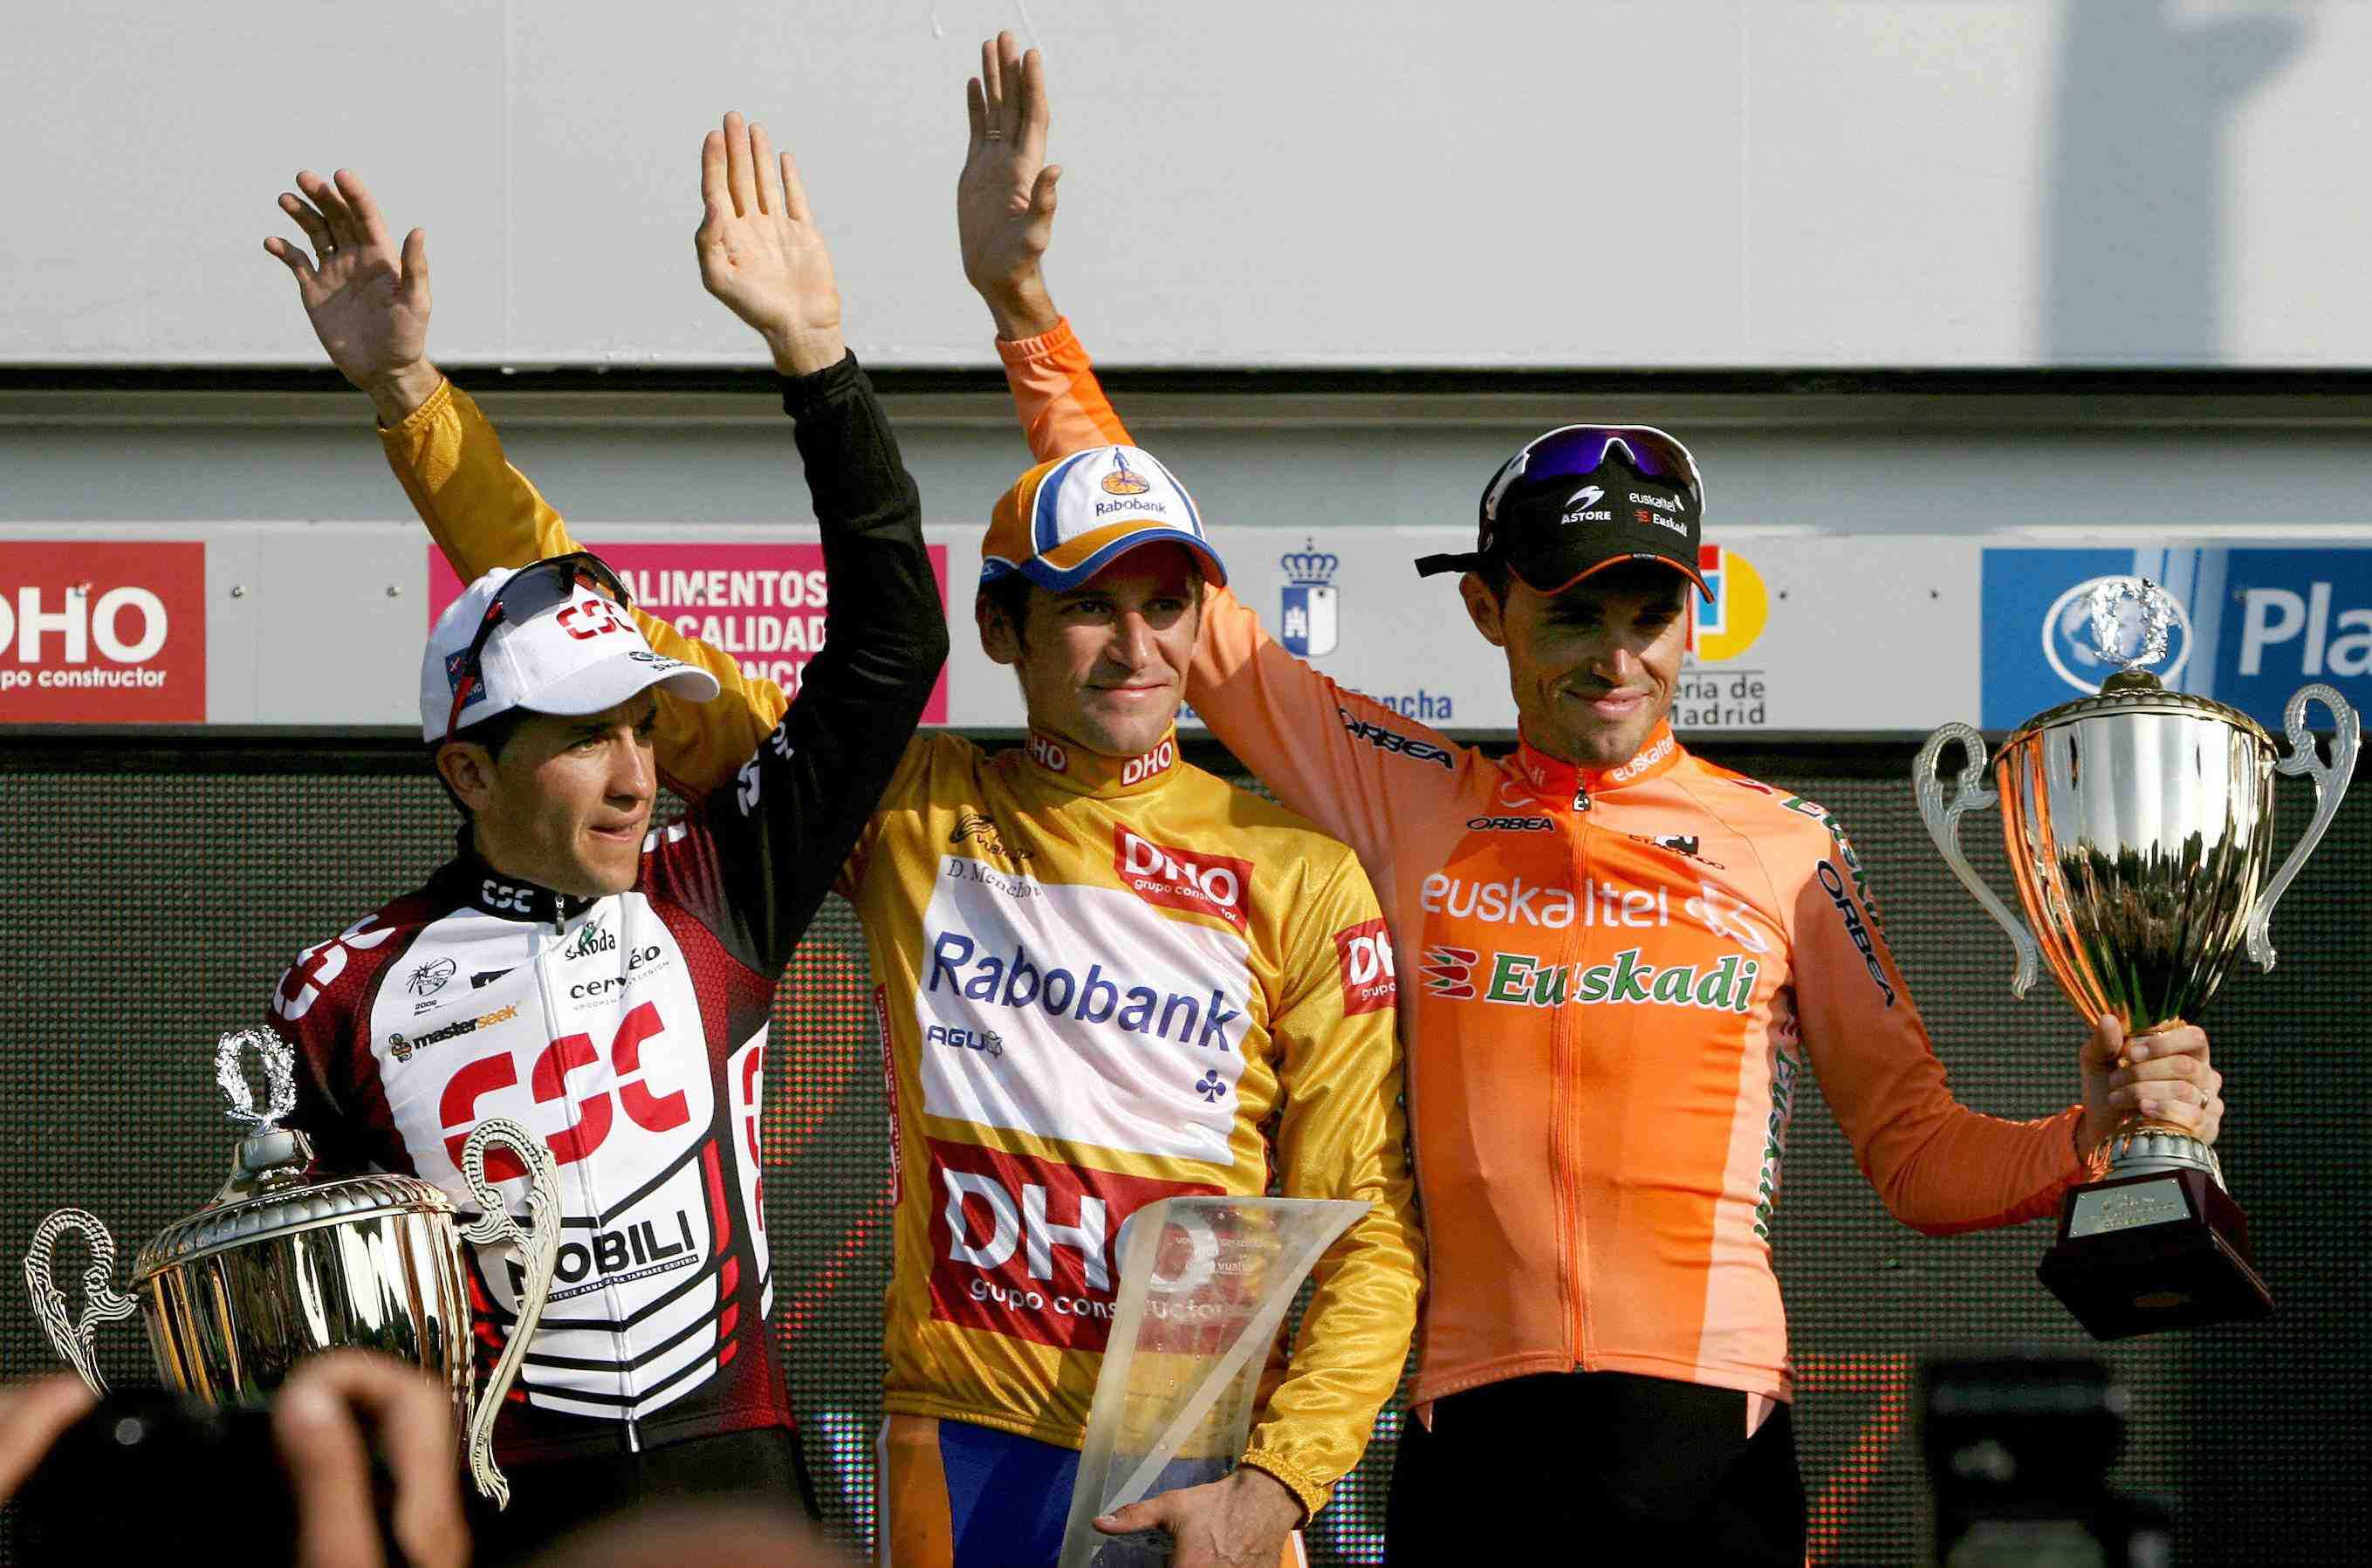 Final 2007 Vuelta podium: Carlos Sastre, Denis Menchov, and Samuel Sanchez.